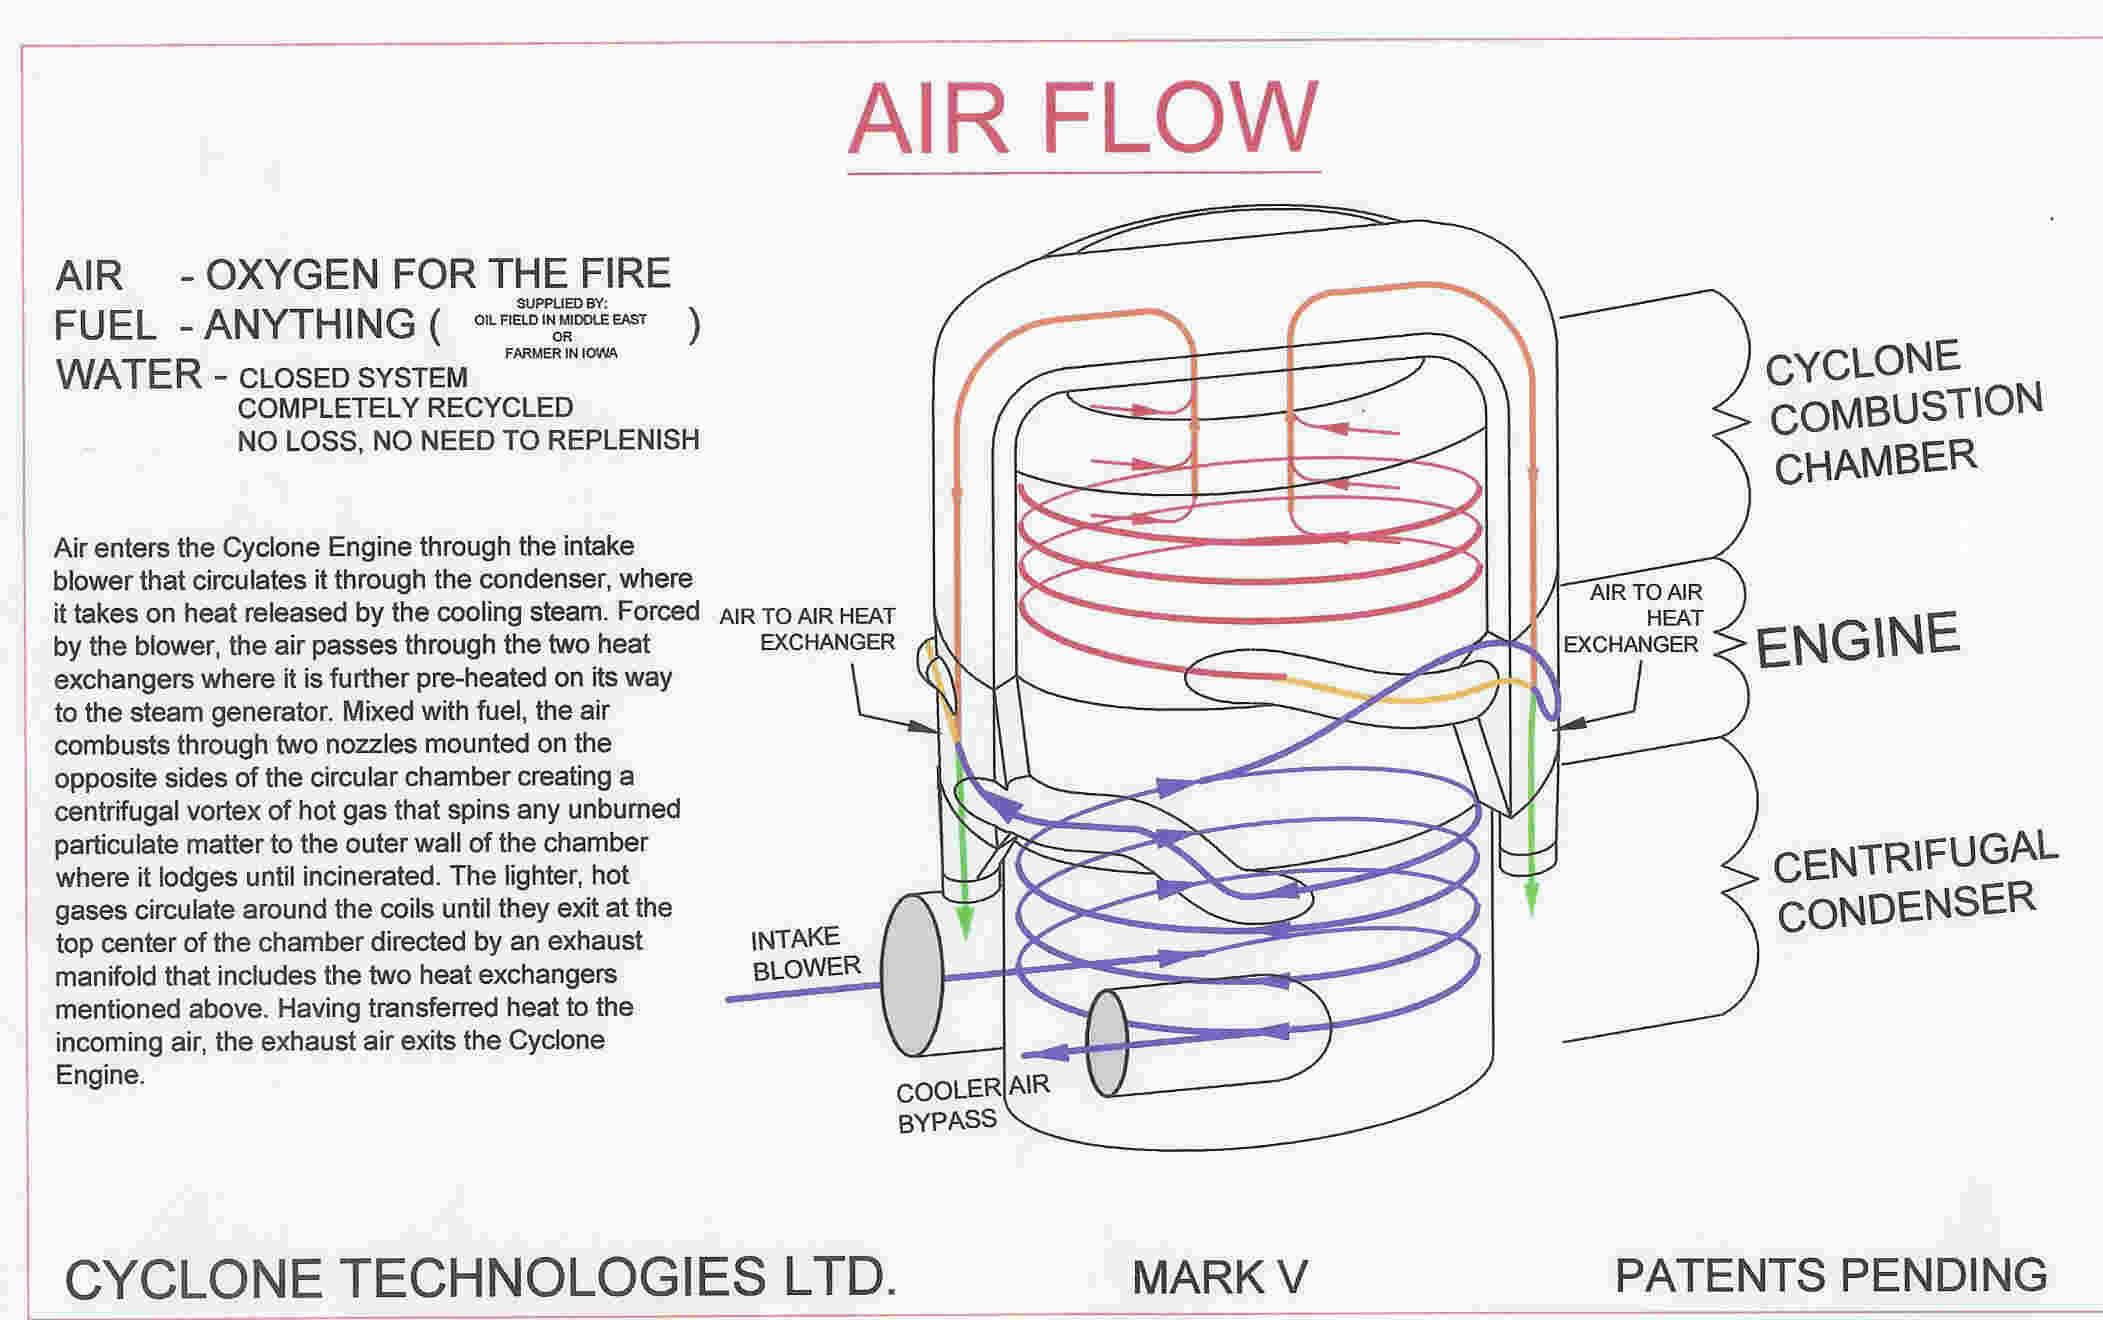 graphicairflow